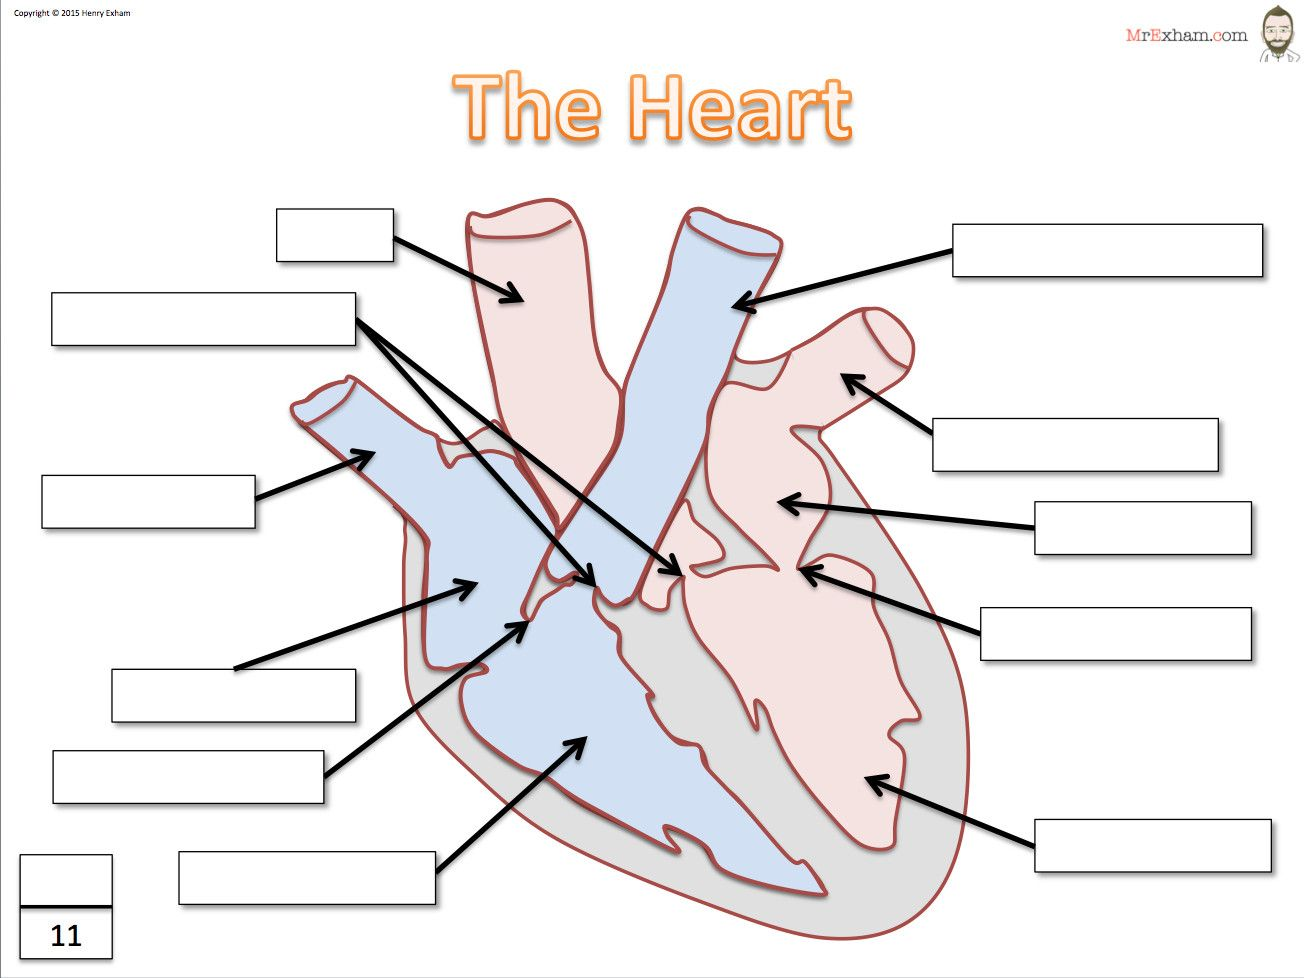 Labeling Diagrams Of the Heart Beautiful Mr Exham in 2020 ...